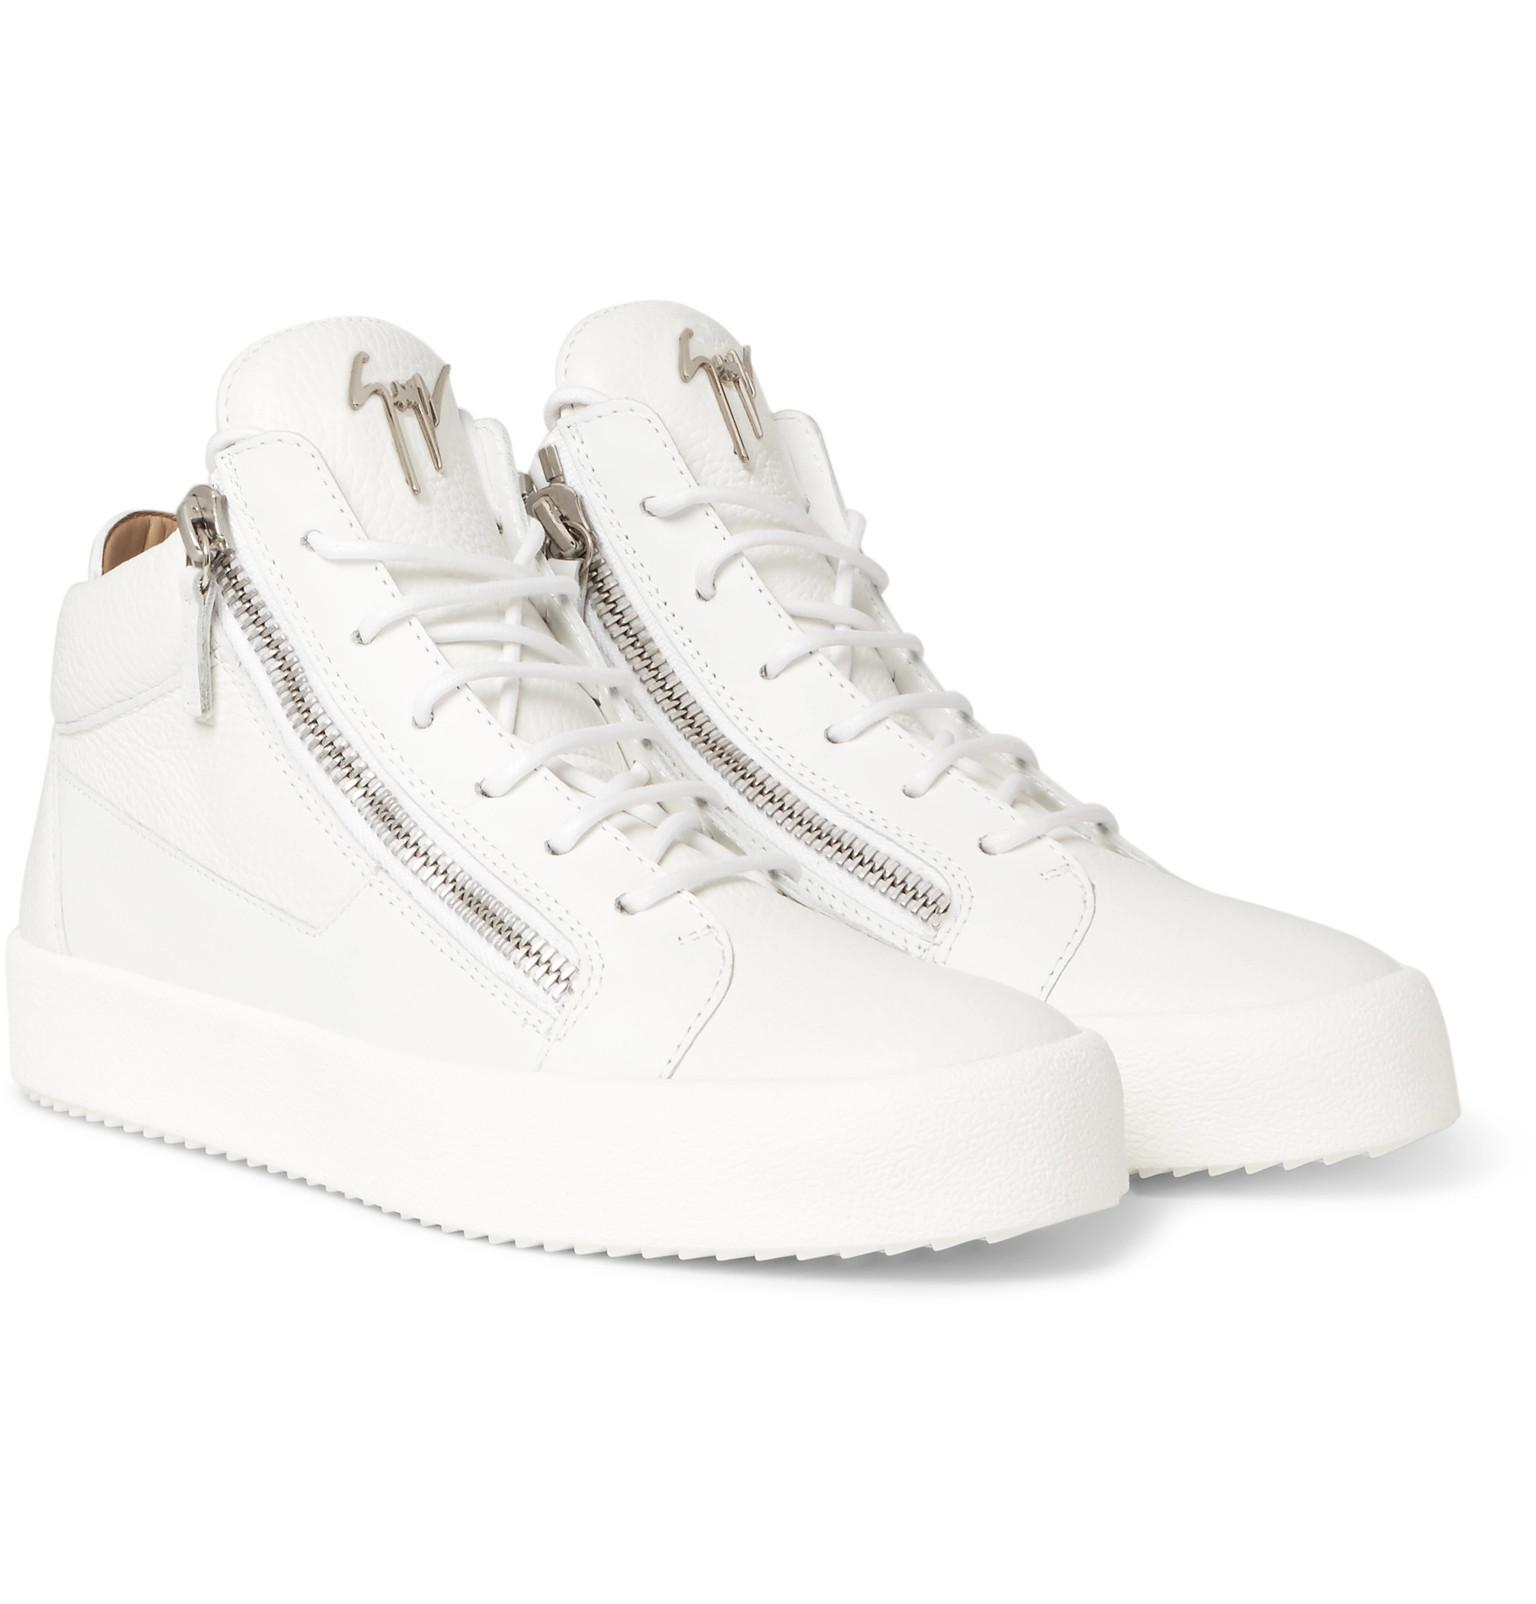 Logoball Textured-leather High-top Sneakers Giuseppe Zanotti BNLmm